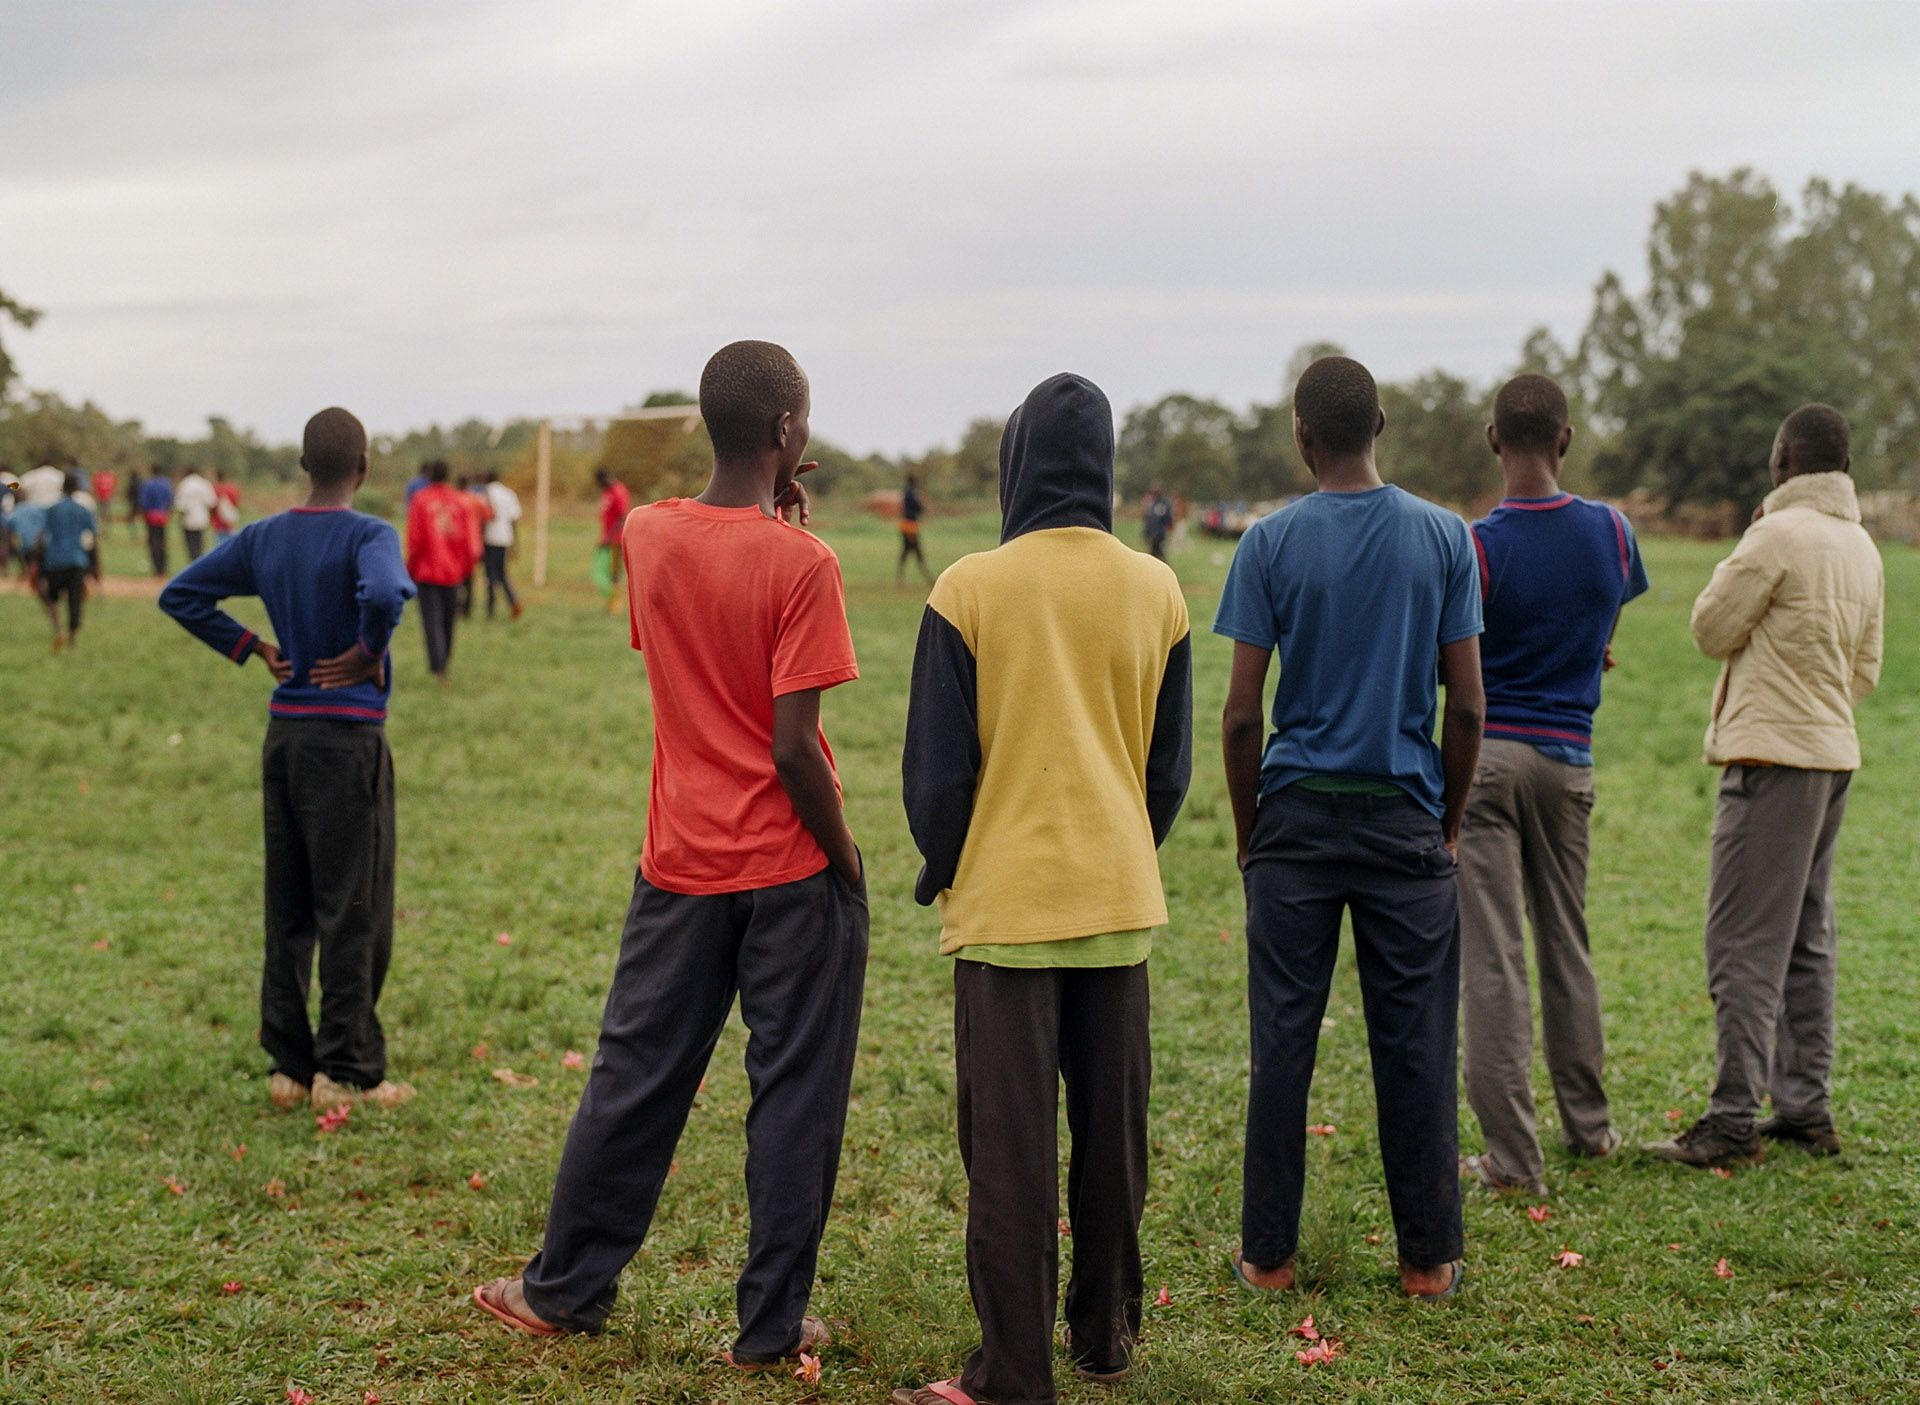 group of boys watching soccer match from the sidelines by Alexi Hobbs in Uganda for Football for good with Sportsnet